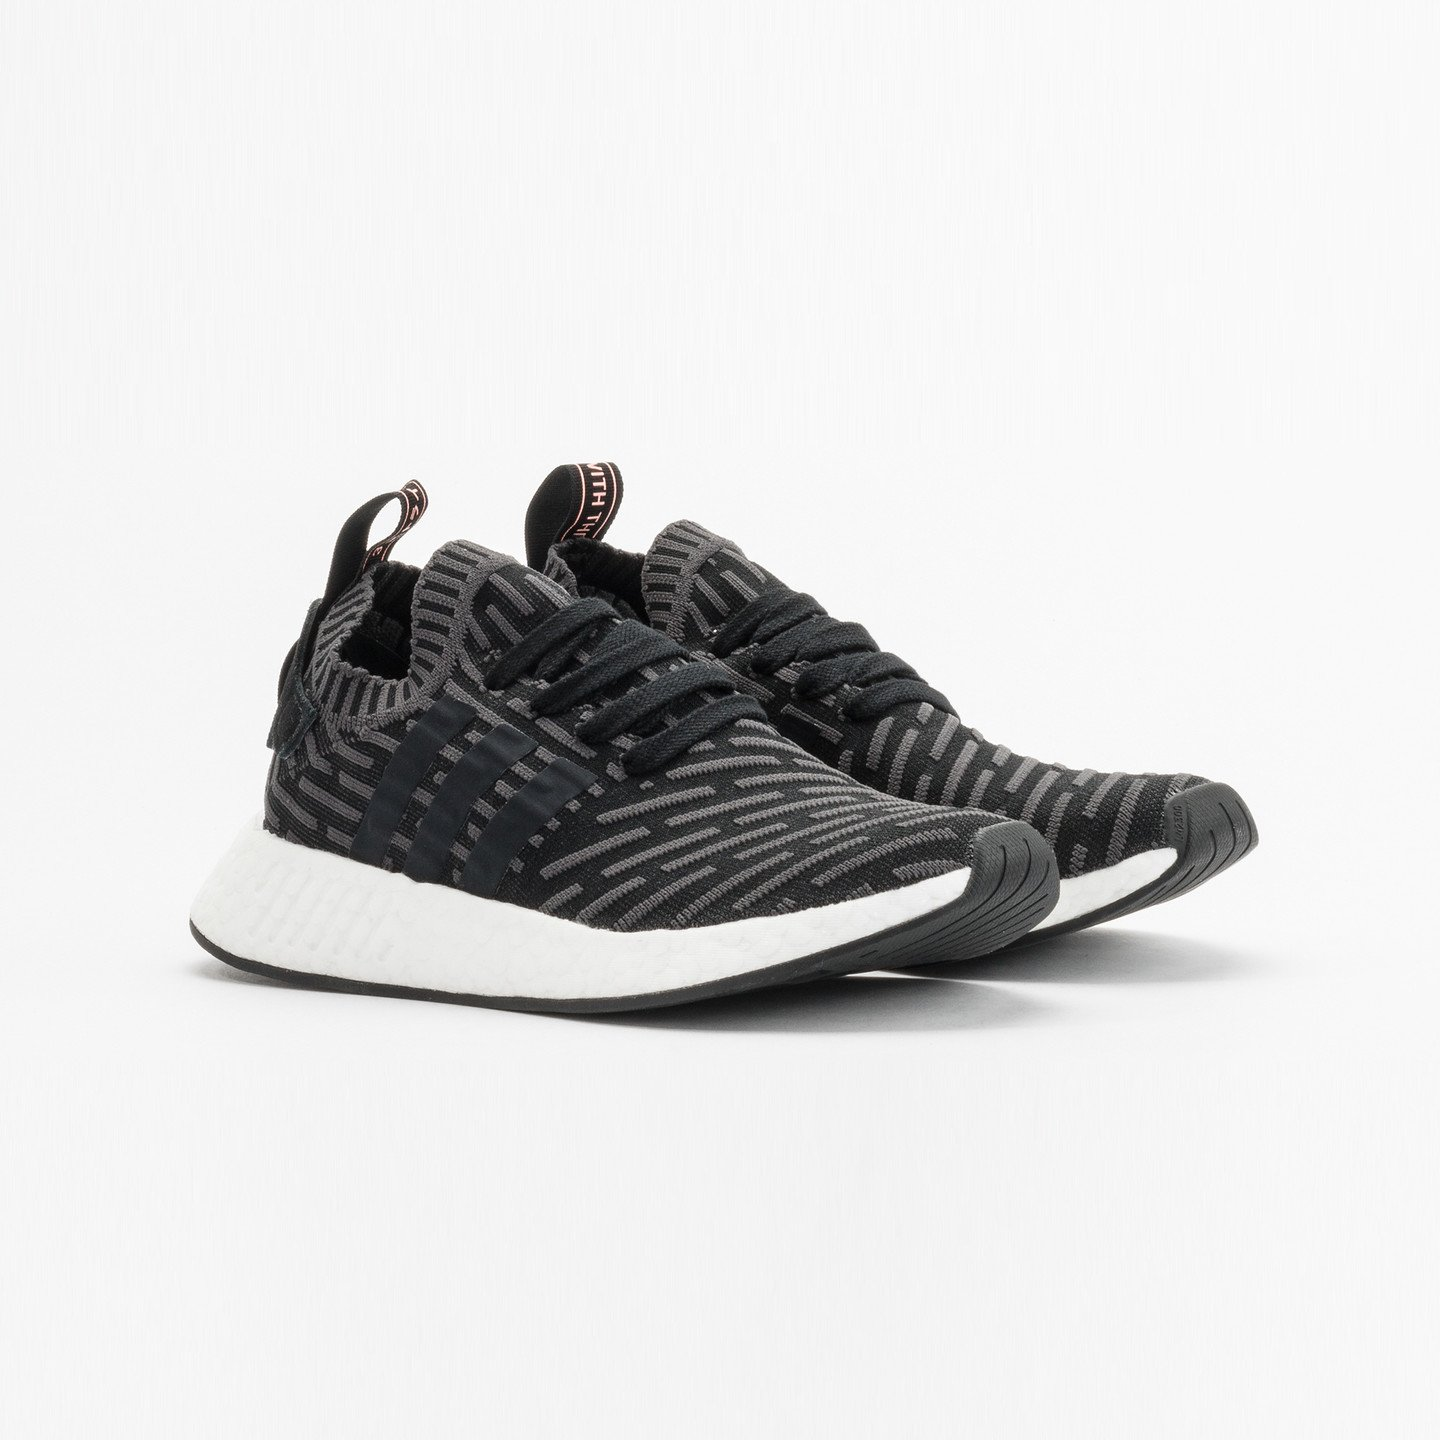 Adidas NMD R2 PK W Utility Black / Core Black / Light Peach BA7239-36.66